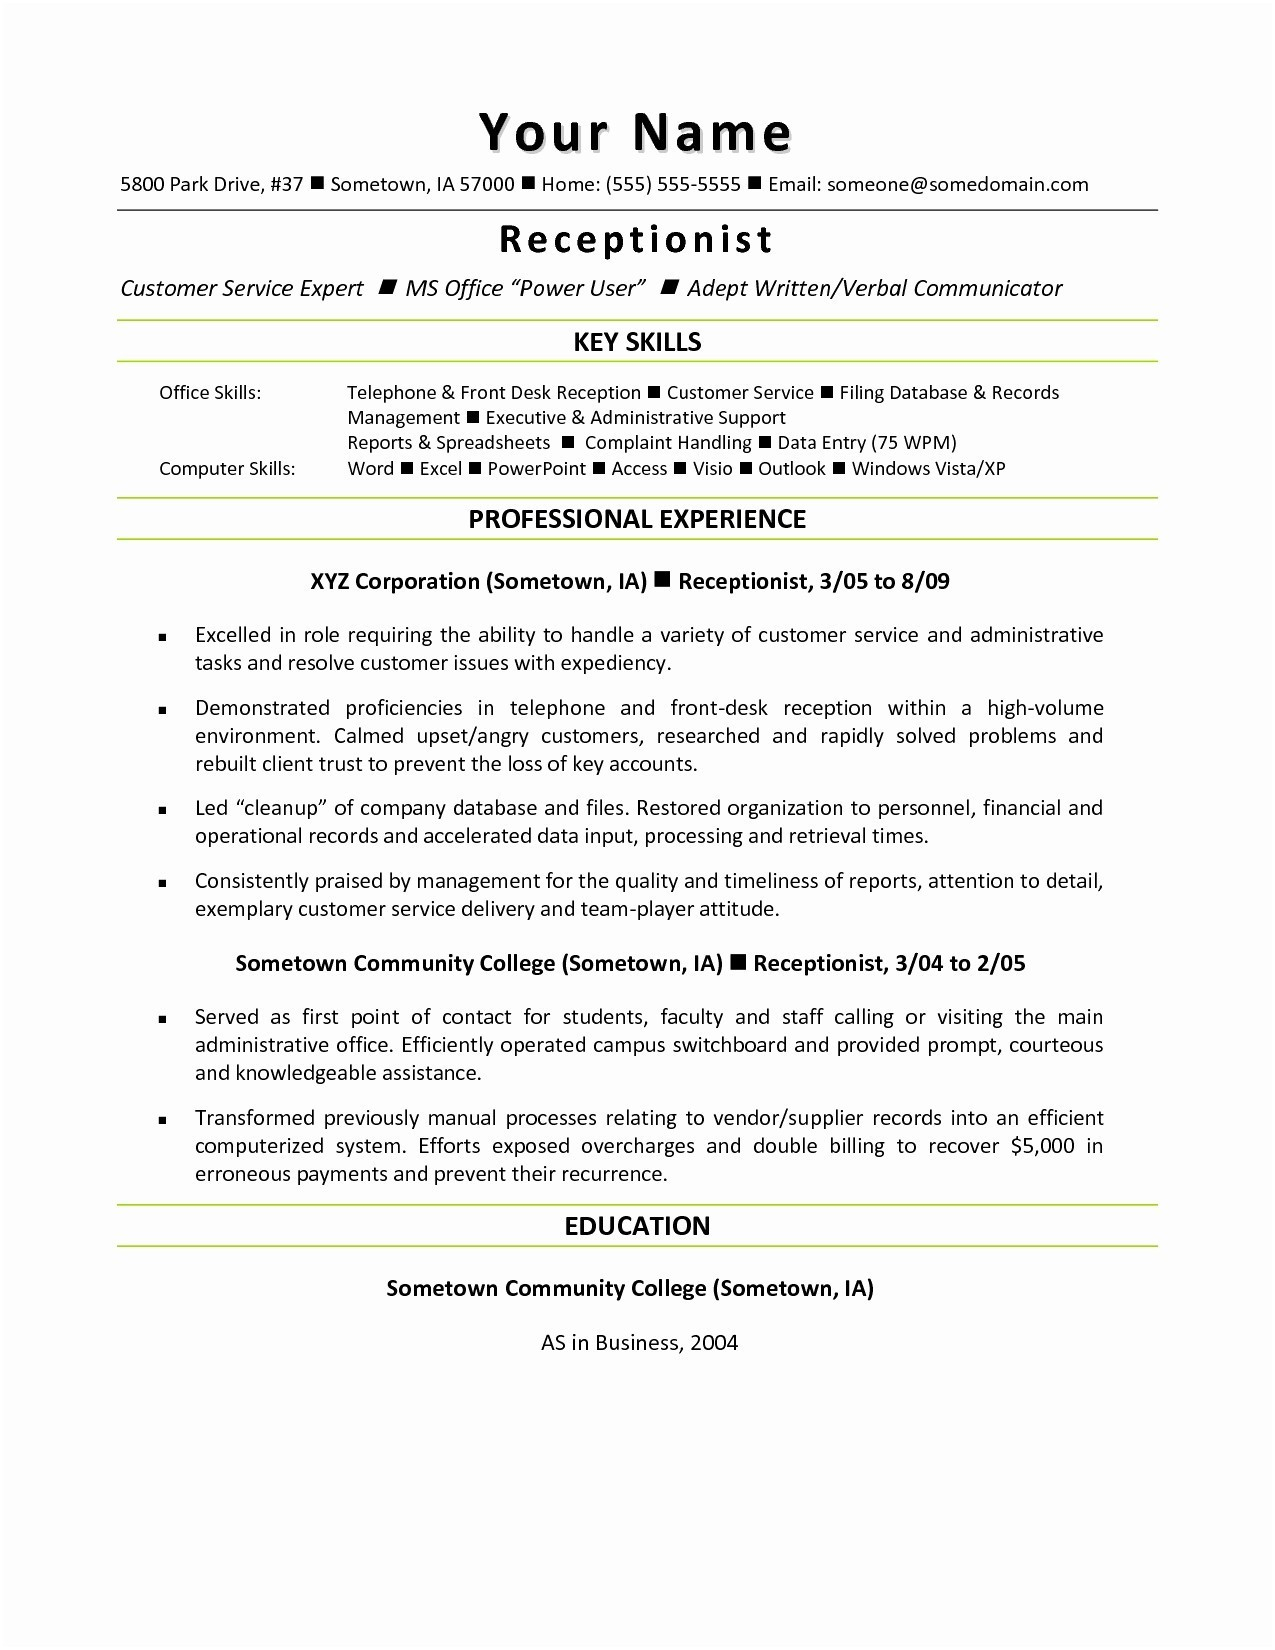 Word Document Cover Letter Template - Resume Microsoft Word Fresh Resume Mail format Sample Fresh